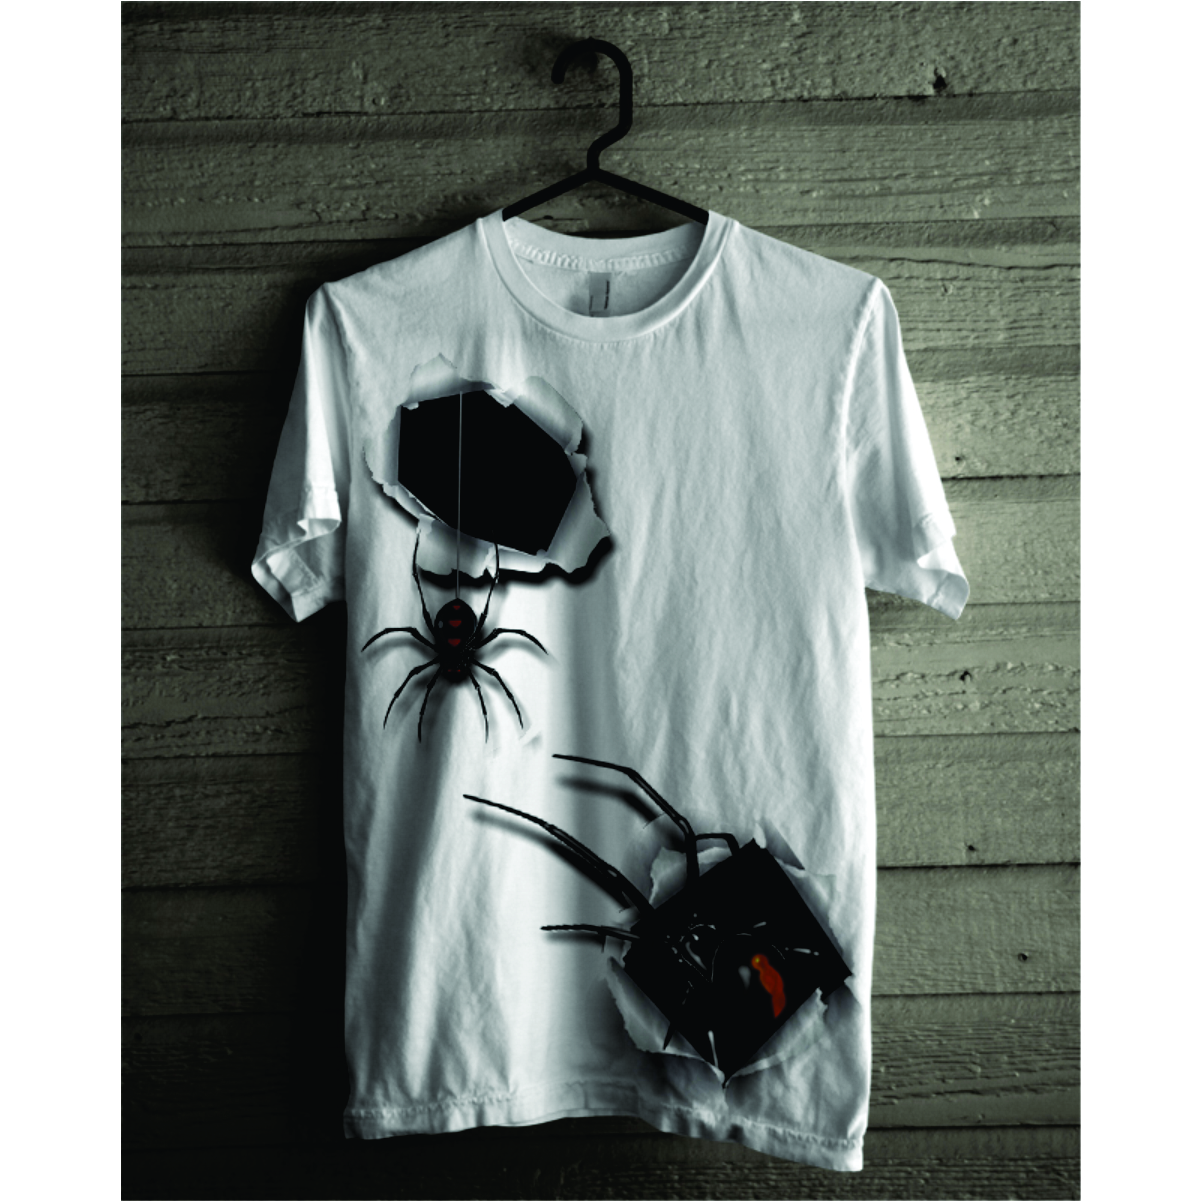 Full Front Print T Shirt Custom Sublimation Shirts All Over T Shirt